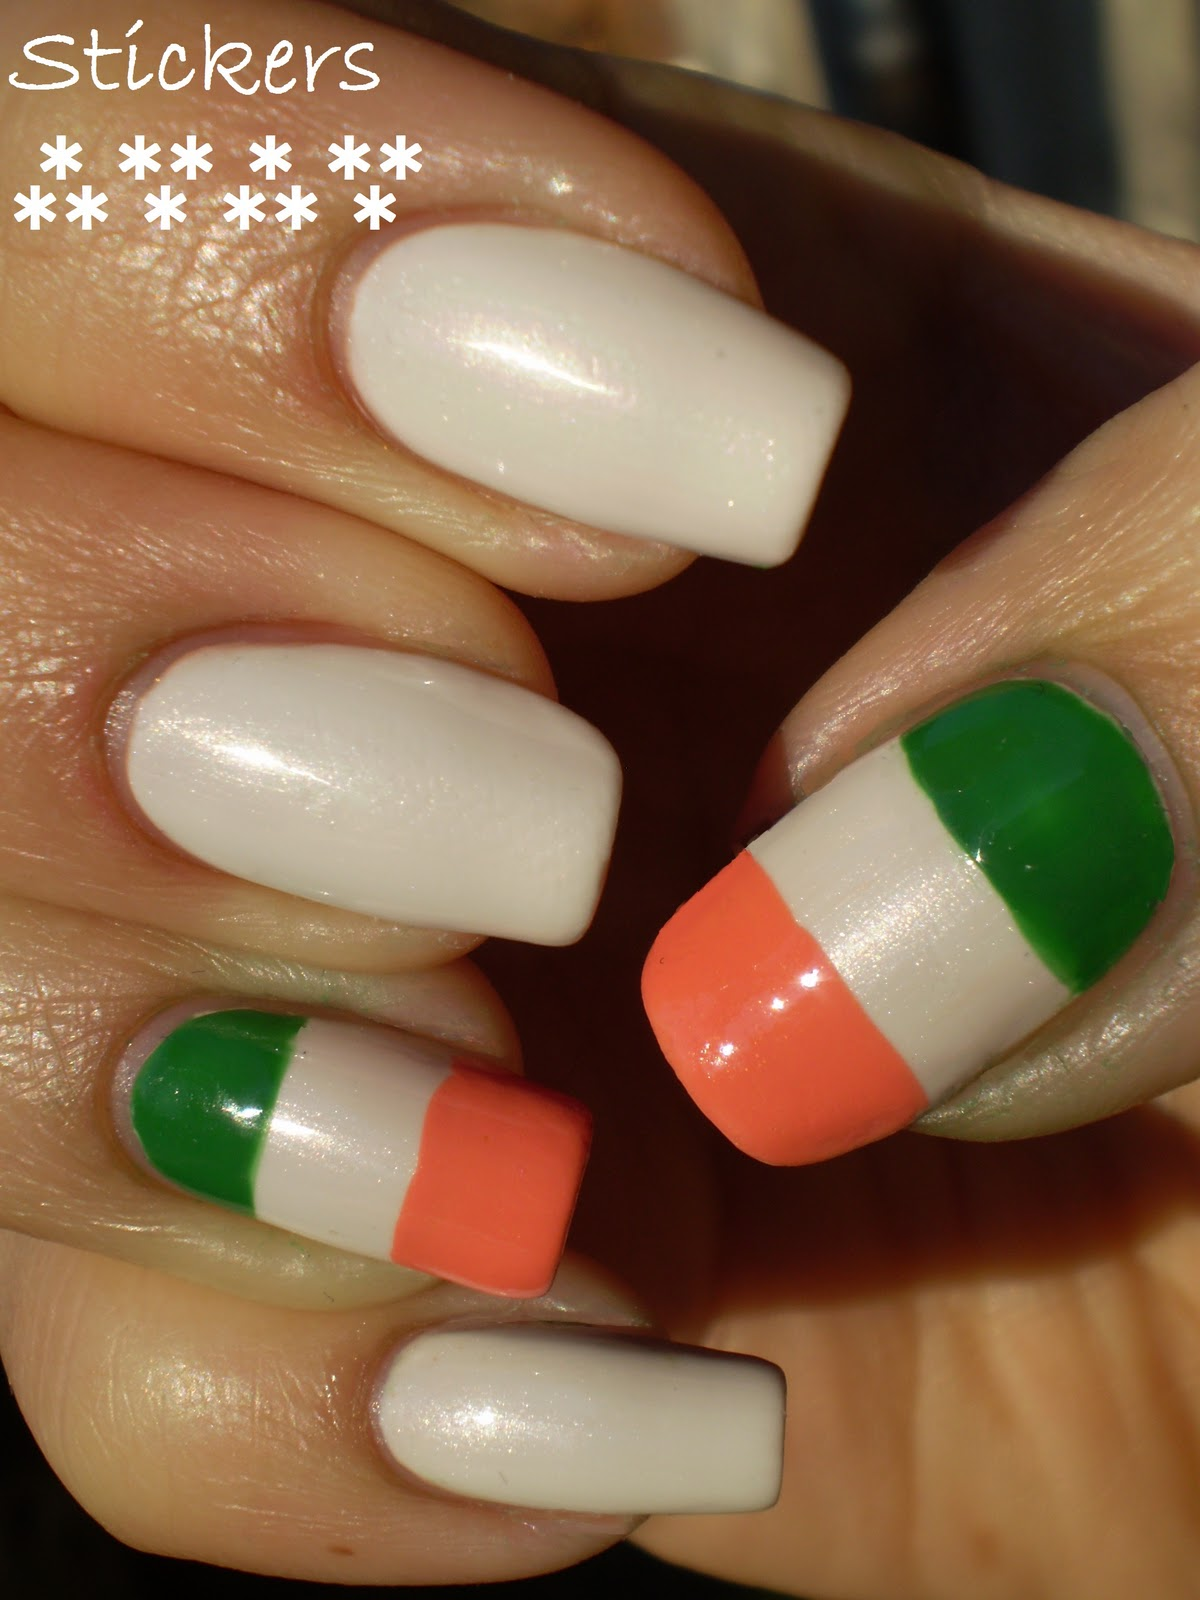 Nails, wanted!: Day 28. Inspired by a flag